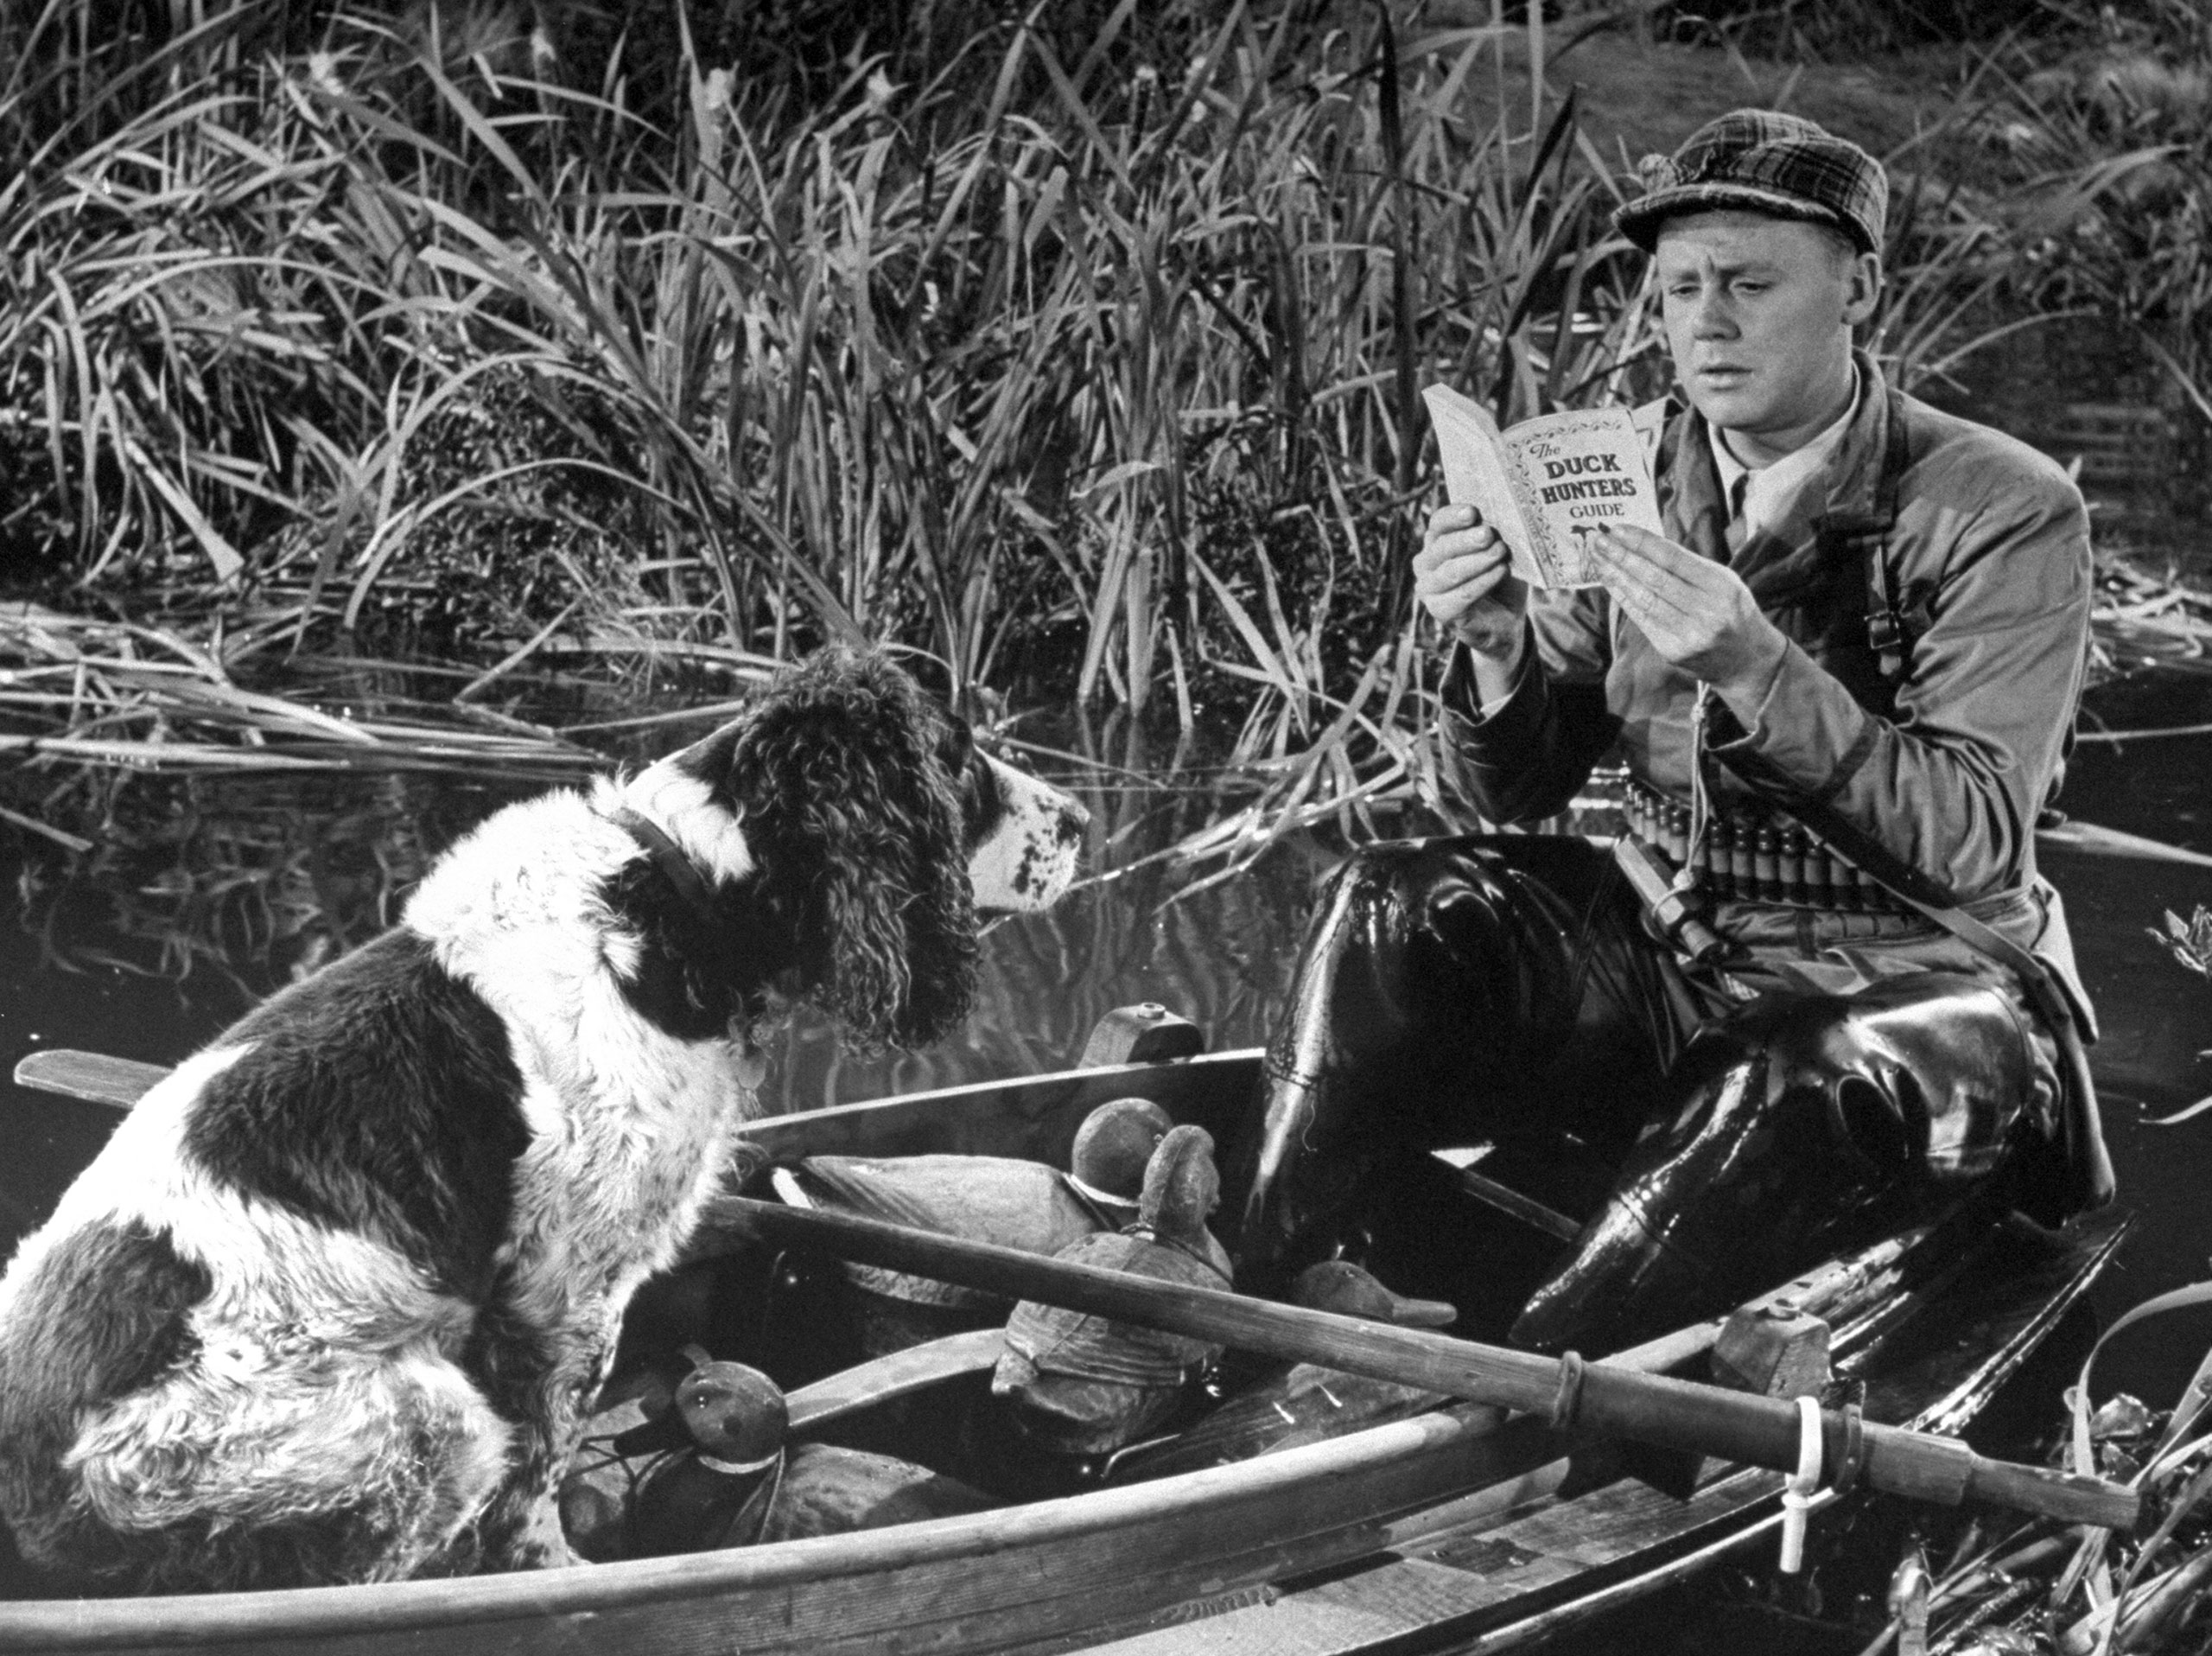 Van Johnson, who was never nominated. Pictured duck hunting in a scene from the movie <i>Early to Bed</i>, 1945.